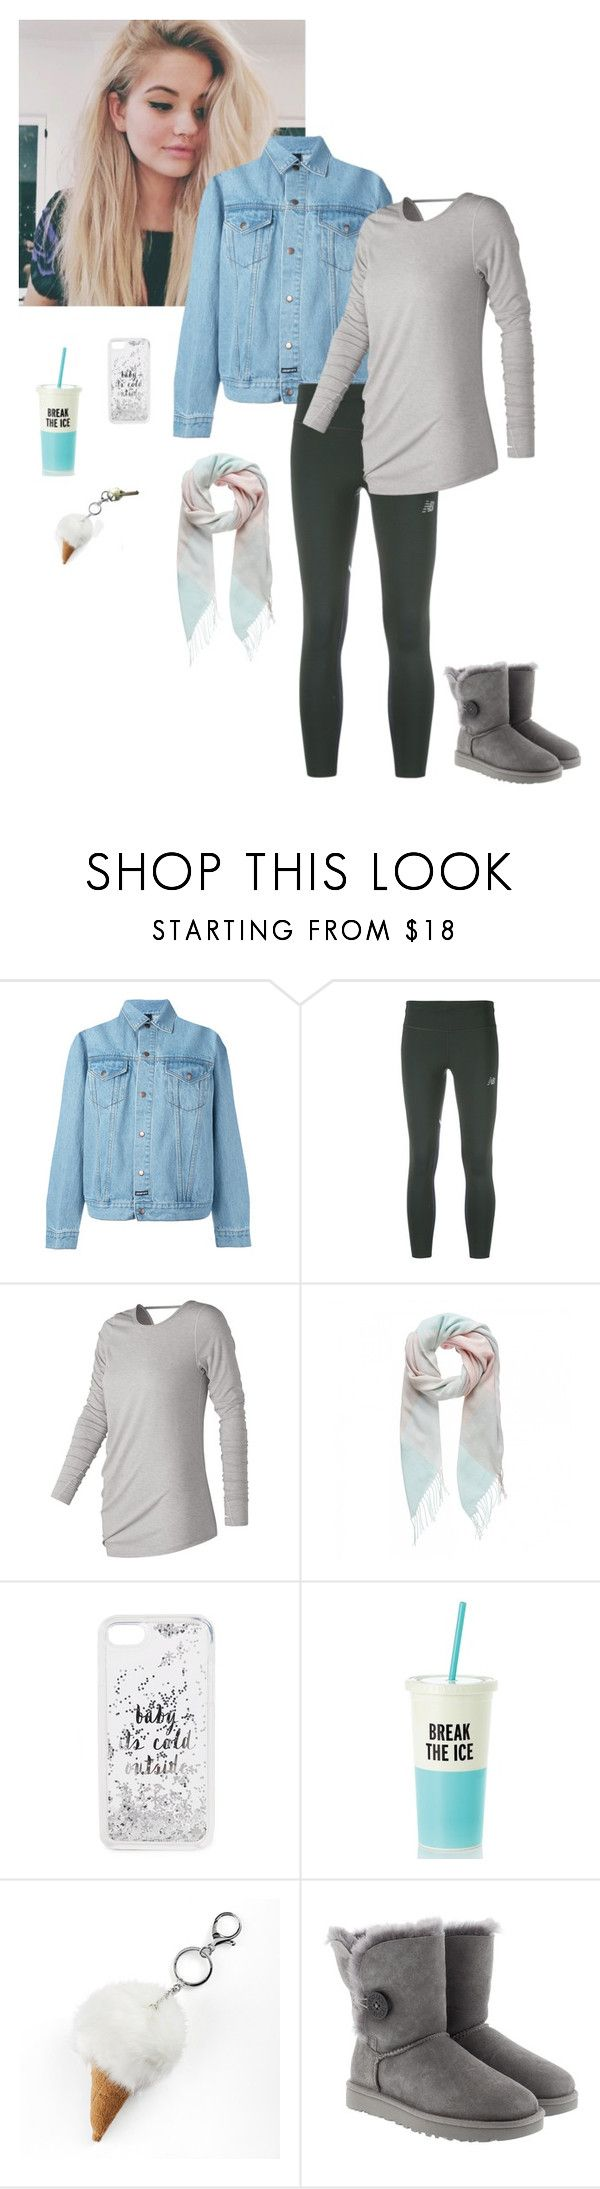 """""""Untitled #992"""" by ninfodora ❤ liked on Polyvore featuring LES (ART)ISTS, New Balance, Forever New, Kate Spade, Mudd, UGG and Kwikset"""